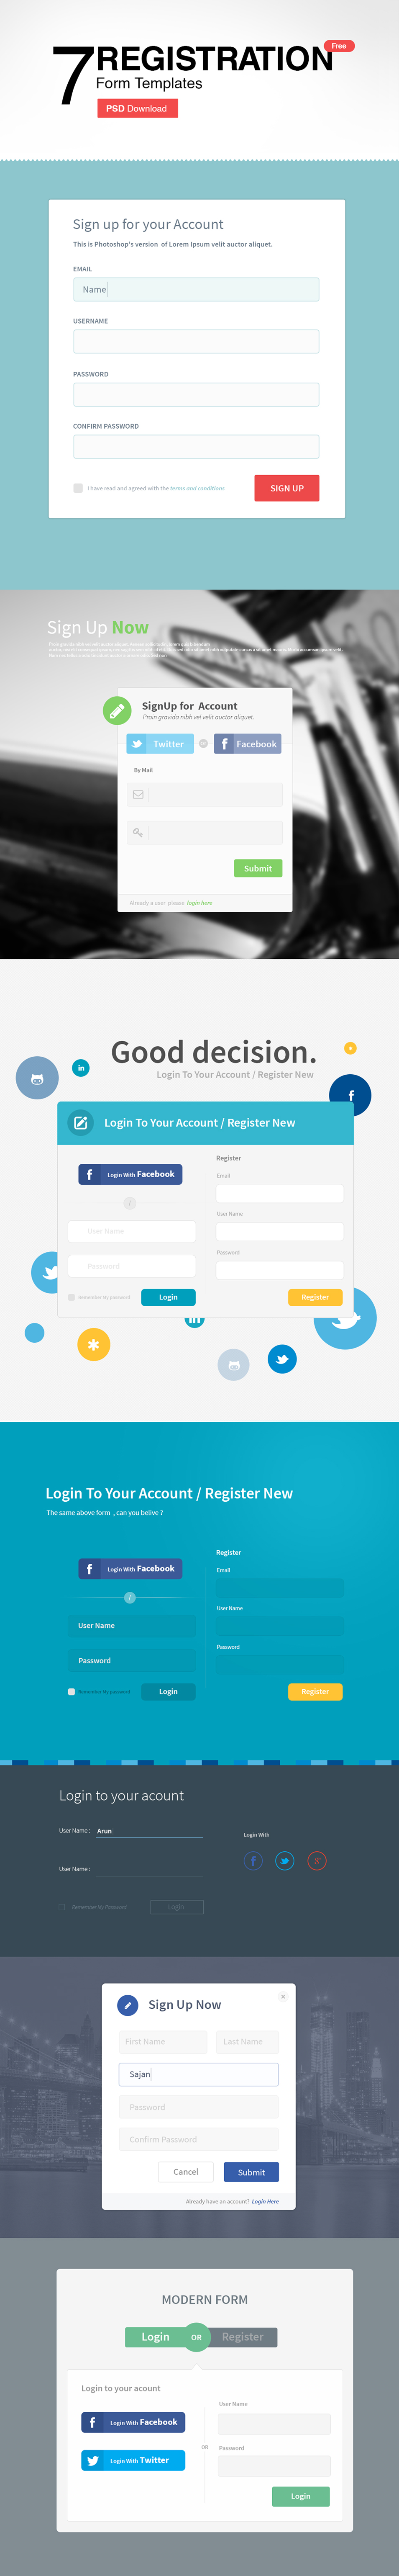 7 Registration Form Templates Psd Freebie No 108 My Favorite Ui